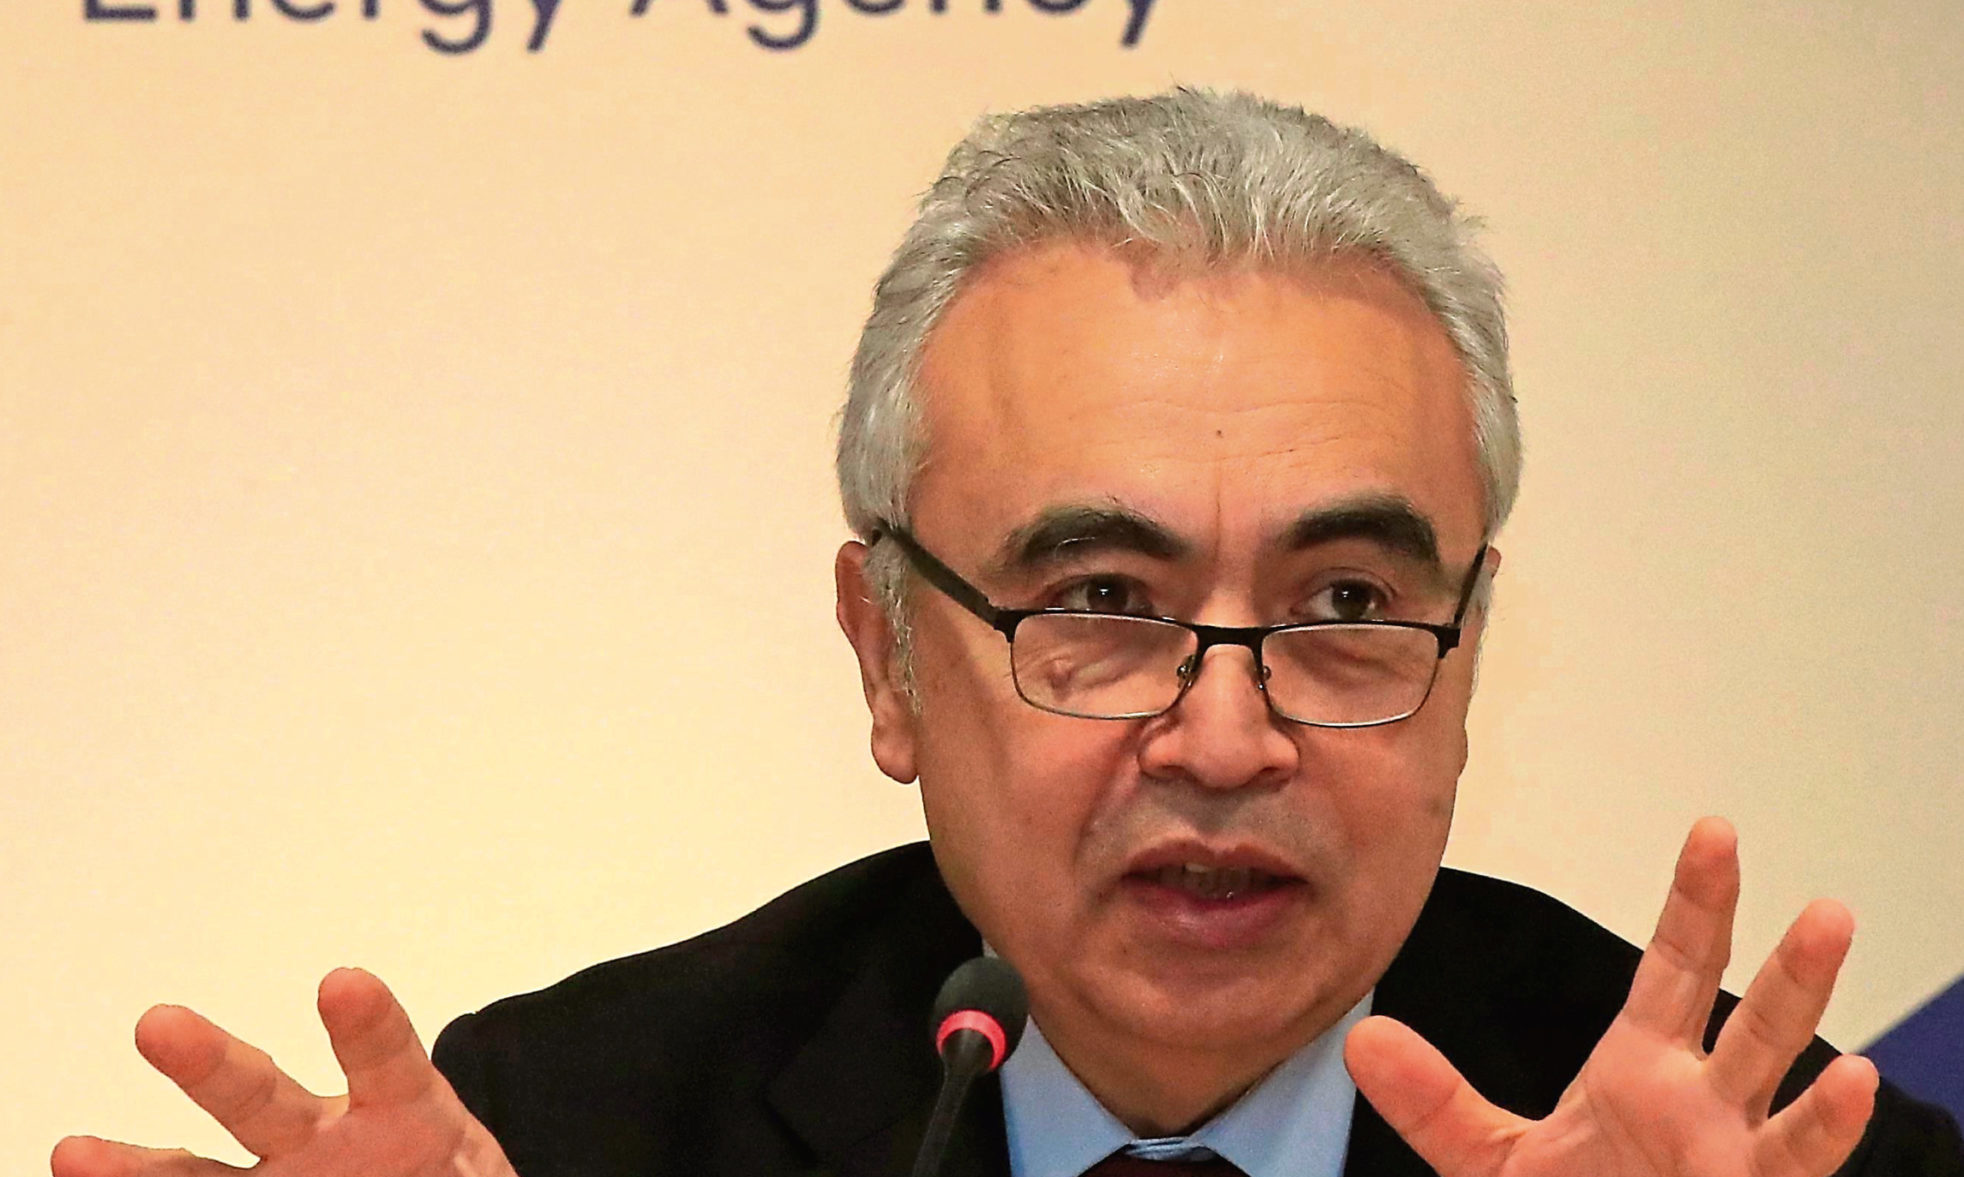 Executive Director of the International Energy Agency Fatih Birol. Photo by Michel Euler/AP/Shutterstock